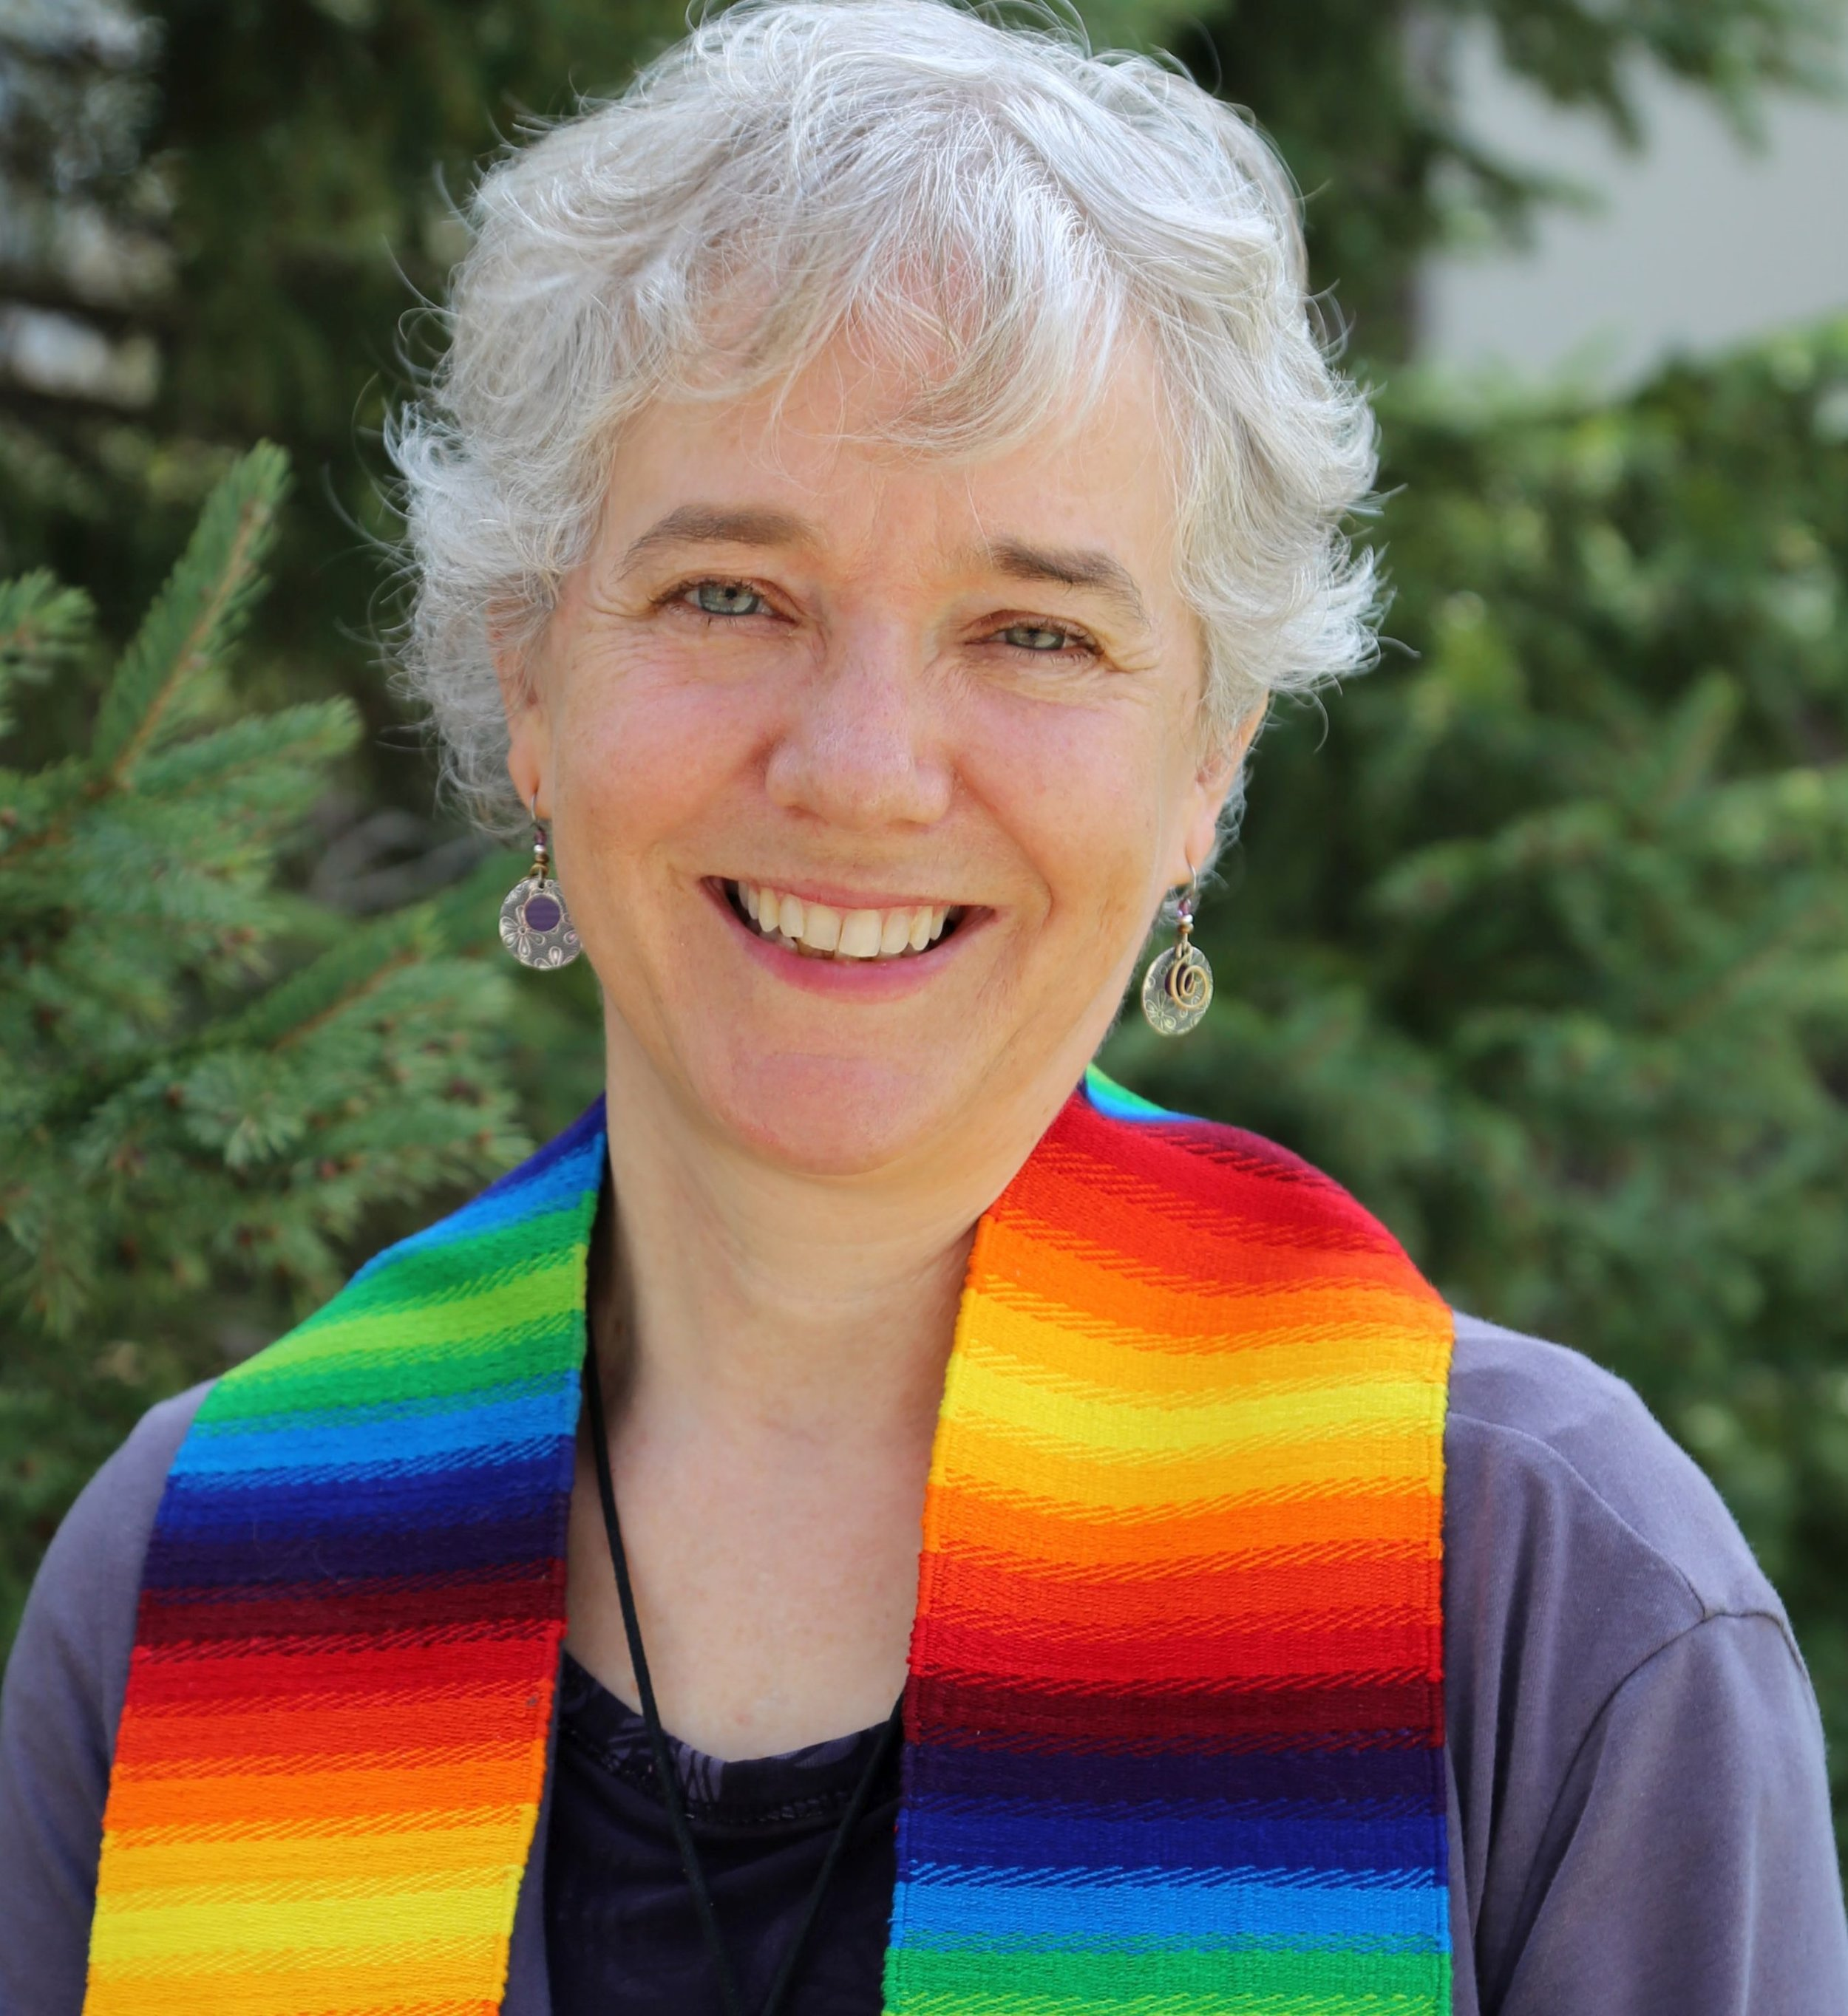 Meet Our Minister - The Reverend Caplow was called as UUCUC's settled minister in May of 2017, and arrived in Urbana in August of 2017. She has served UU congregations in Washington State and Colorado. Read more...